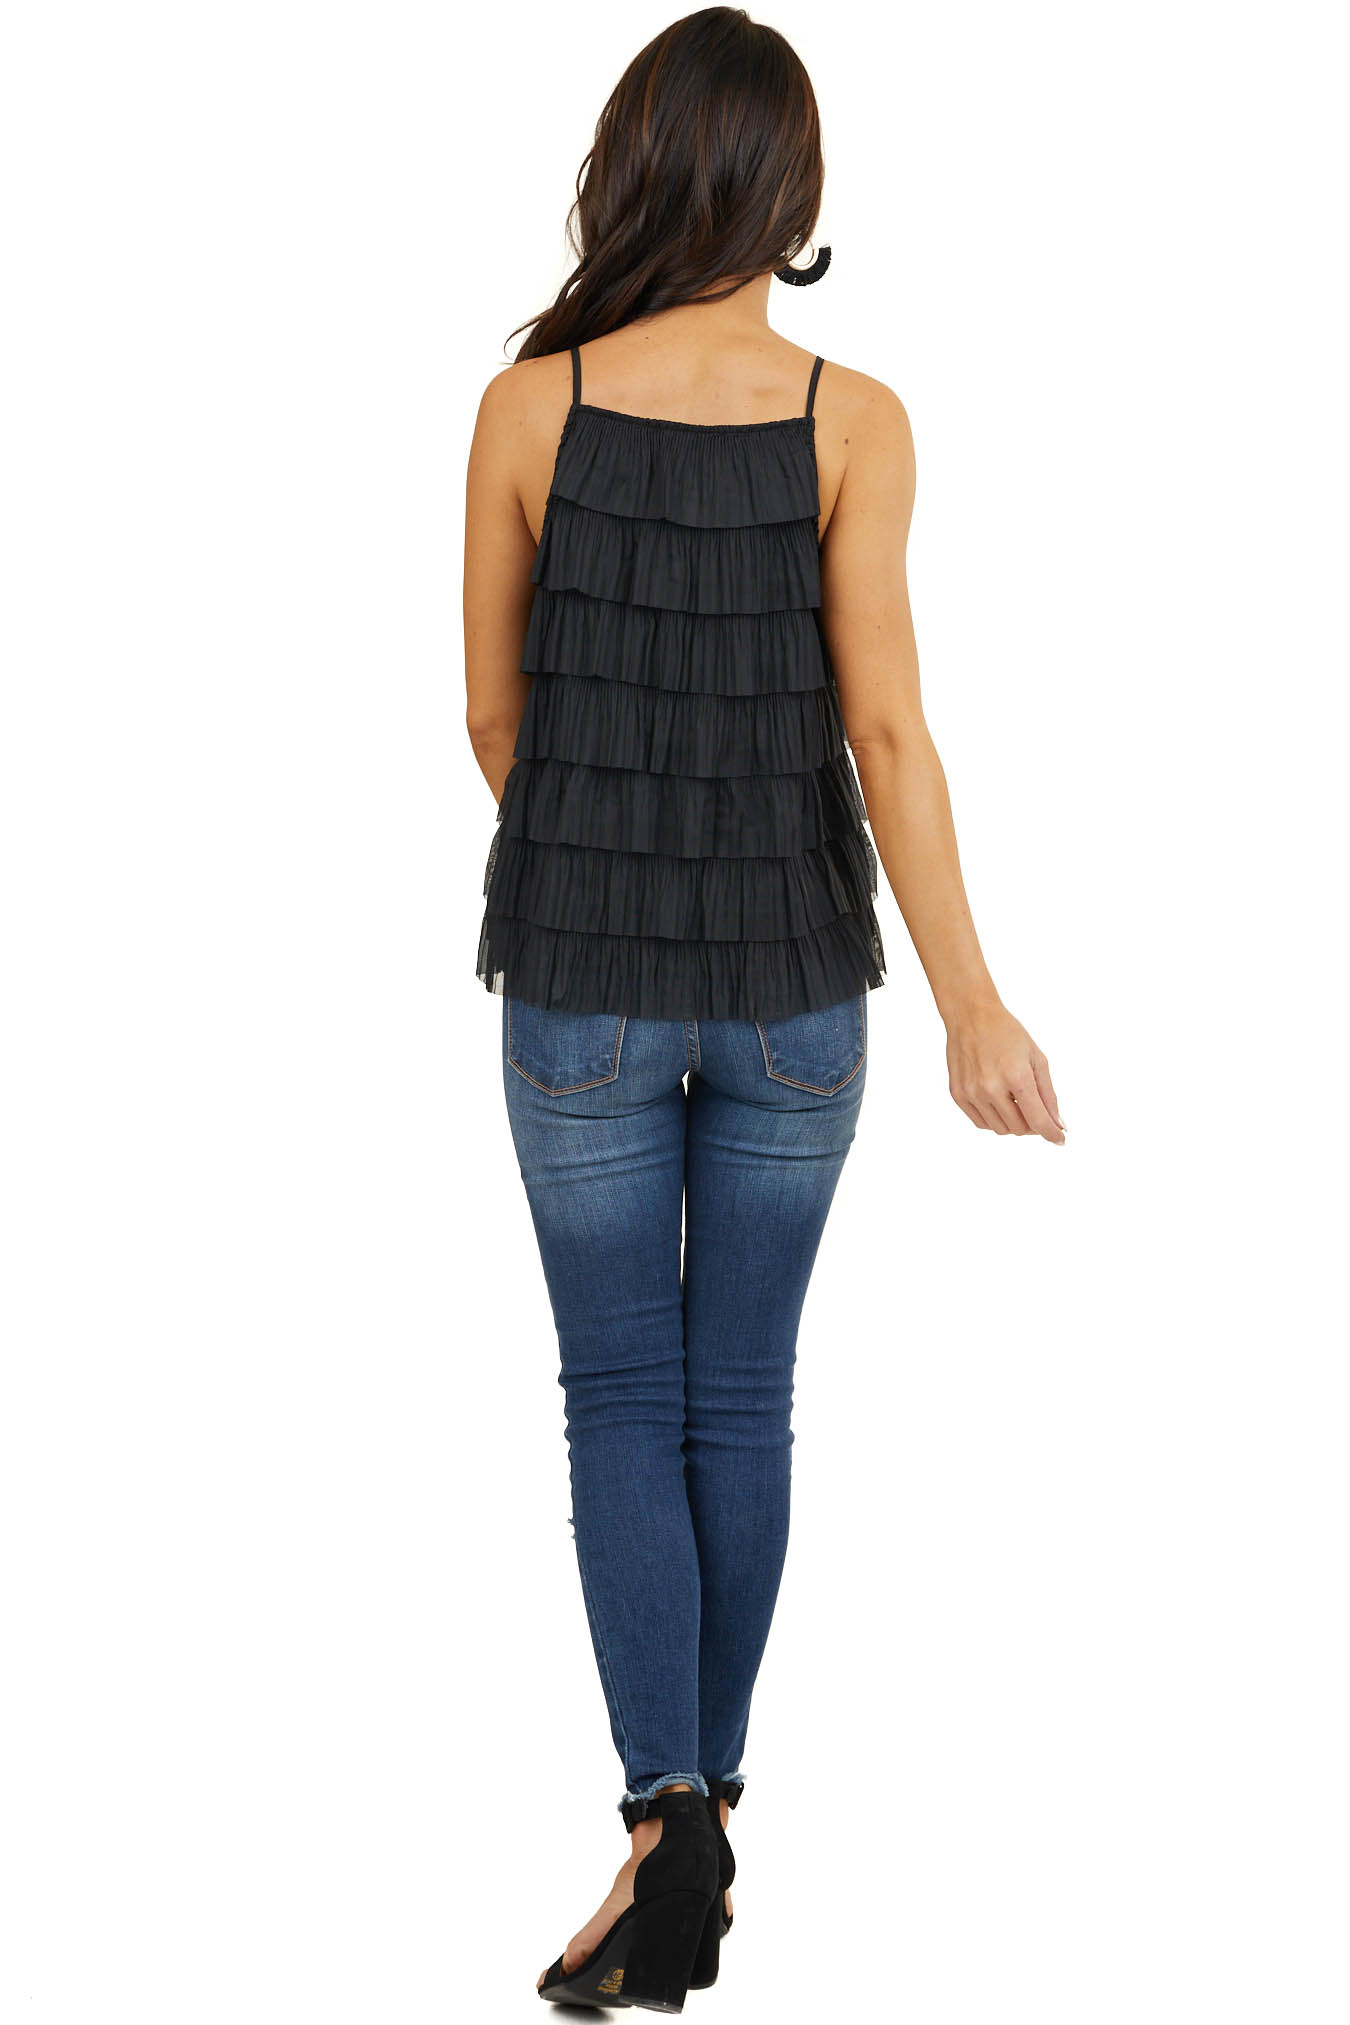 Black Woven Top with Ruffle Tiers and Spaghetti Straps